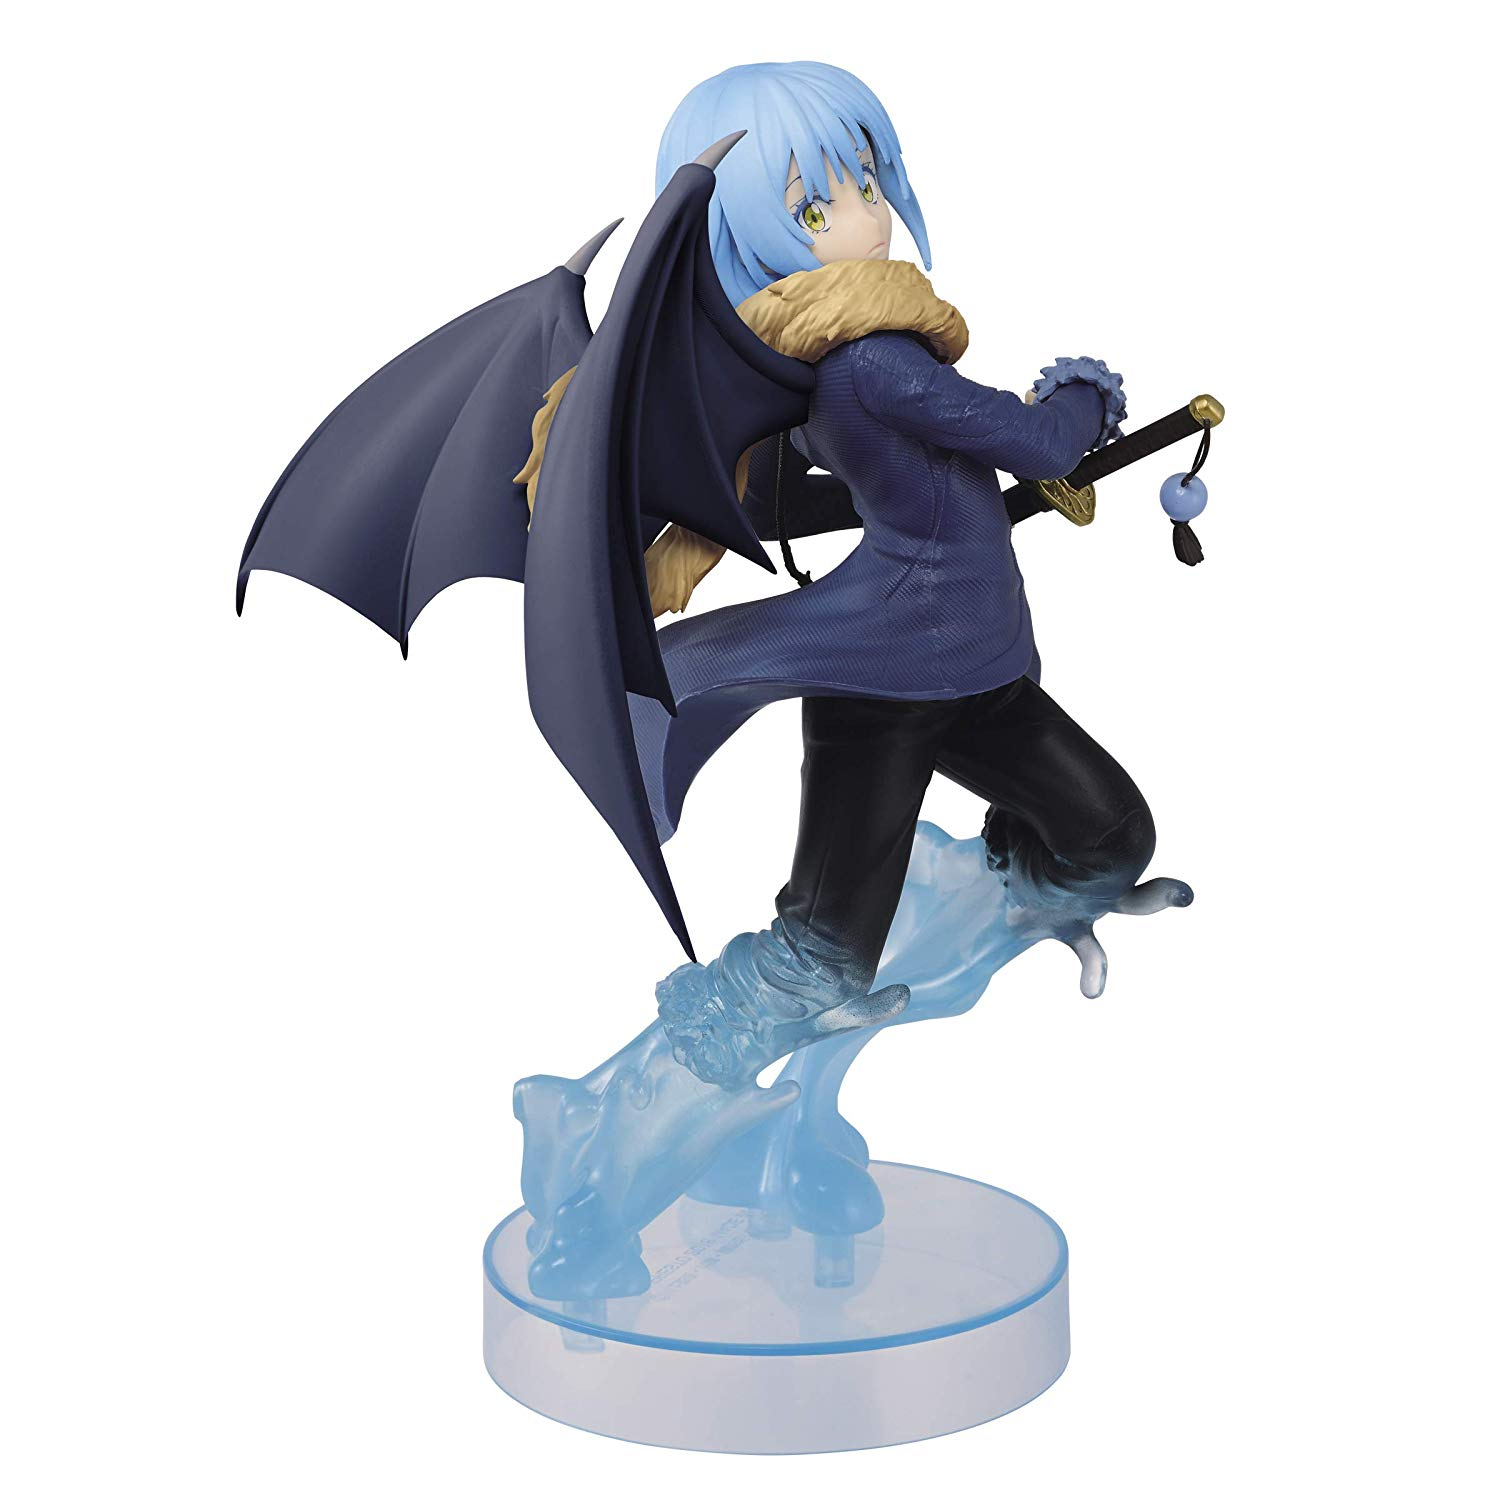 Rimuru Tempest Figure, EXQ Series, Wings Ver., That Time I Got Reincarnated as a Slime, Banpresto